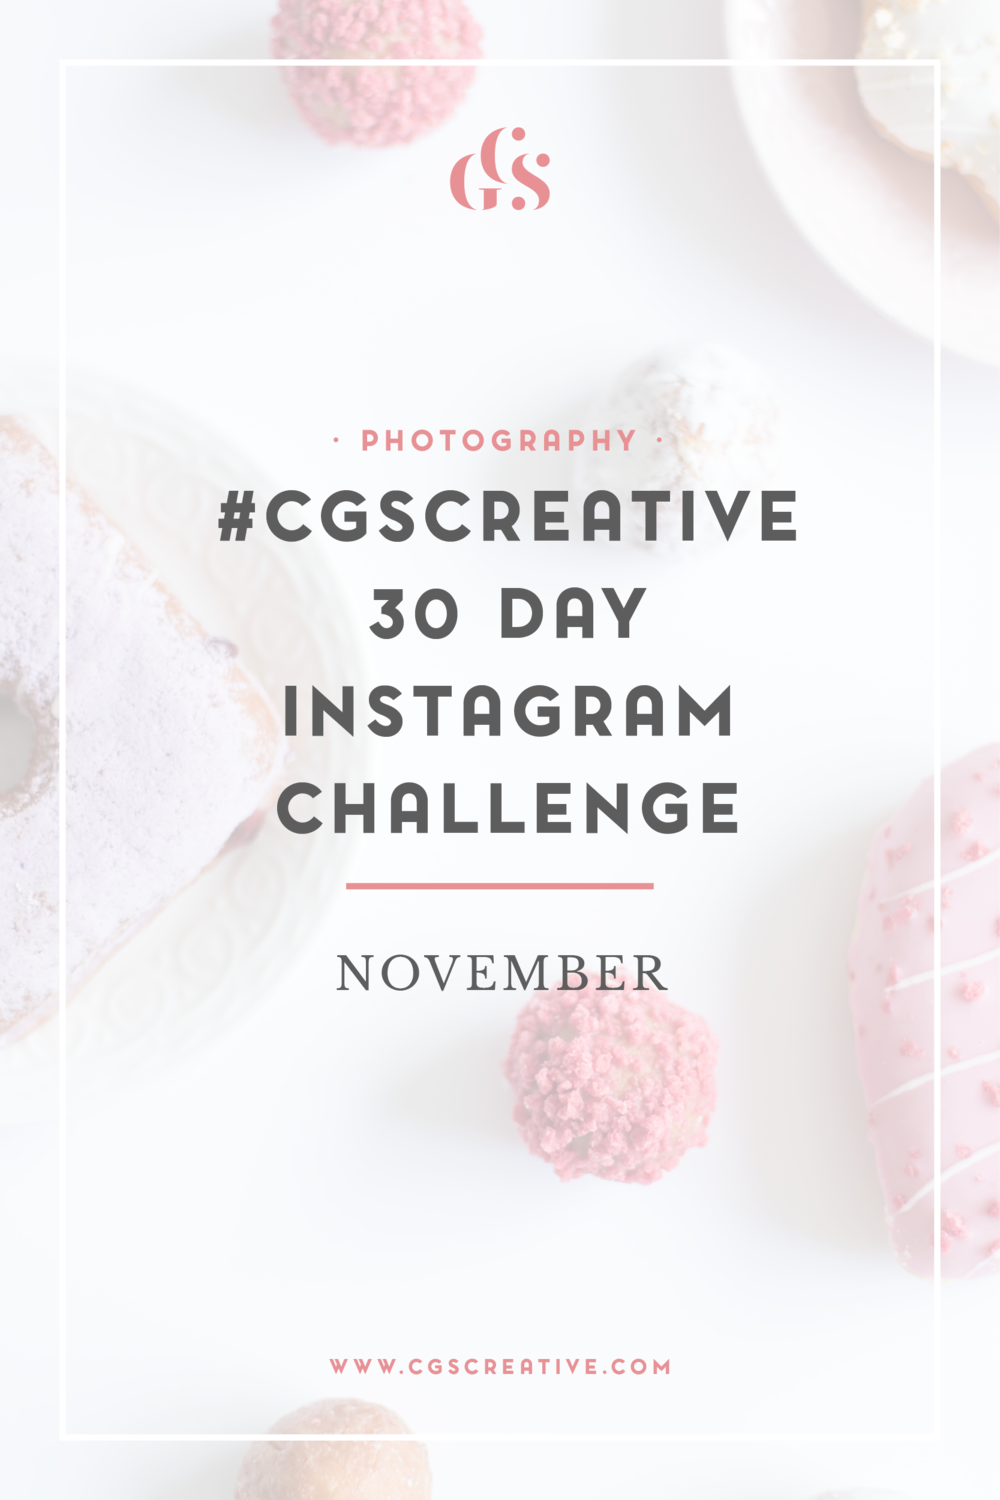 CGScreative Instagram Photo Challenge How to grow your Instagram